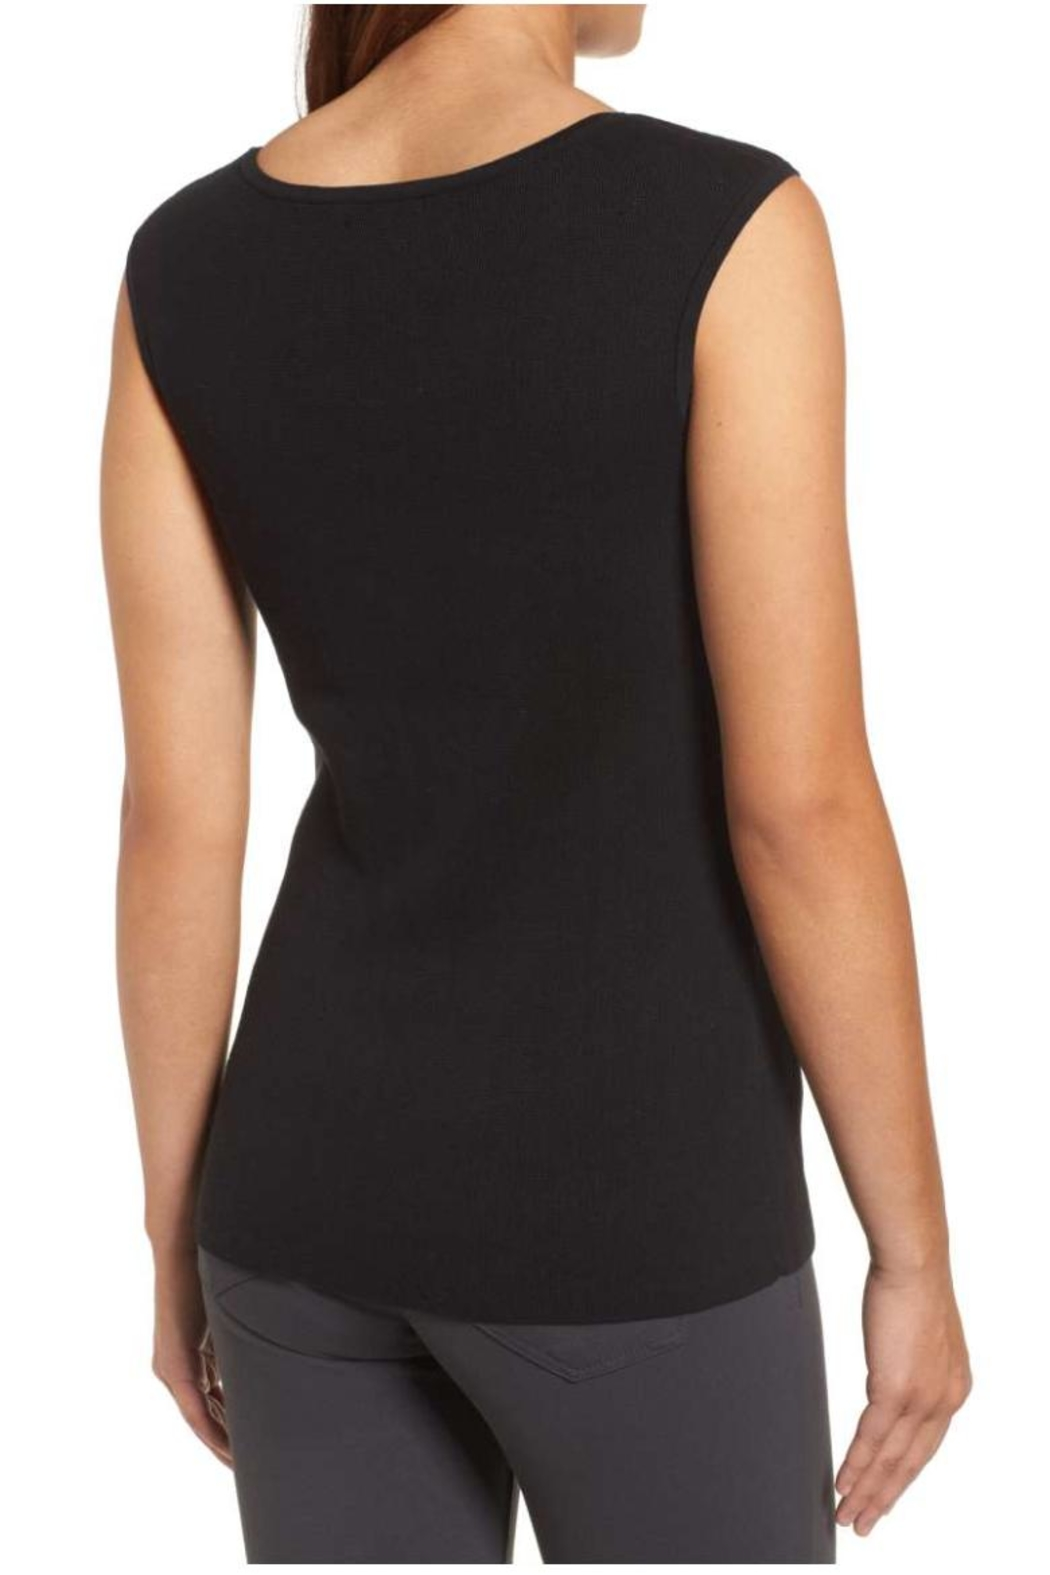 Nic + Zoe Aurora Sweater Tank Top - Front Full Image